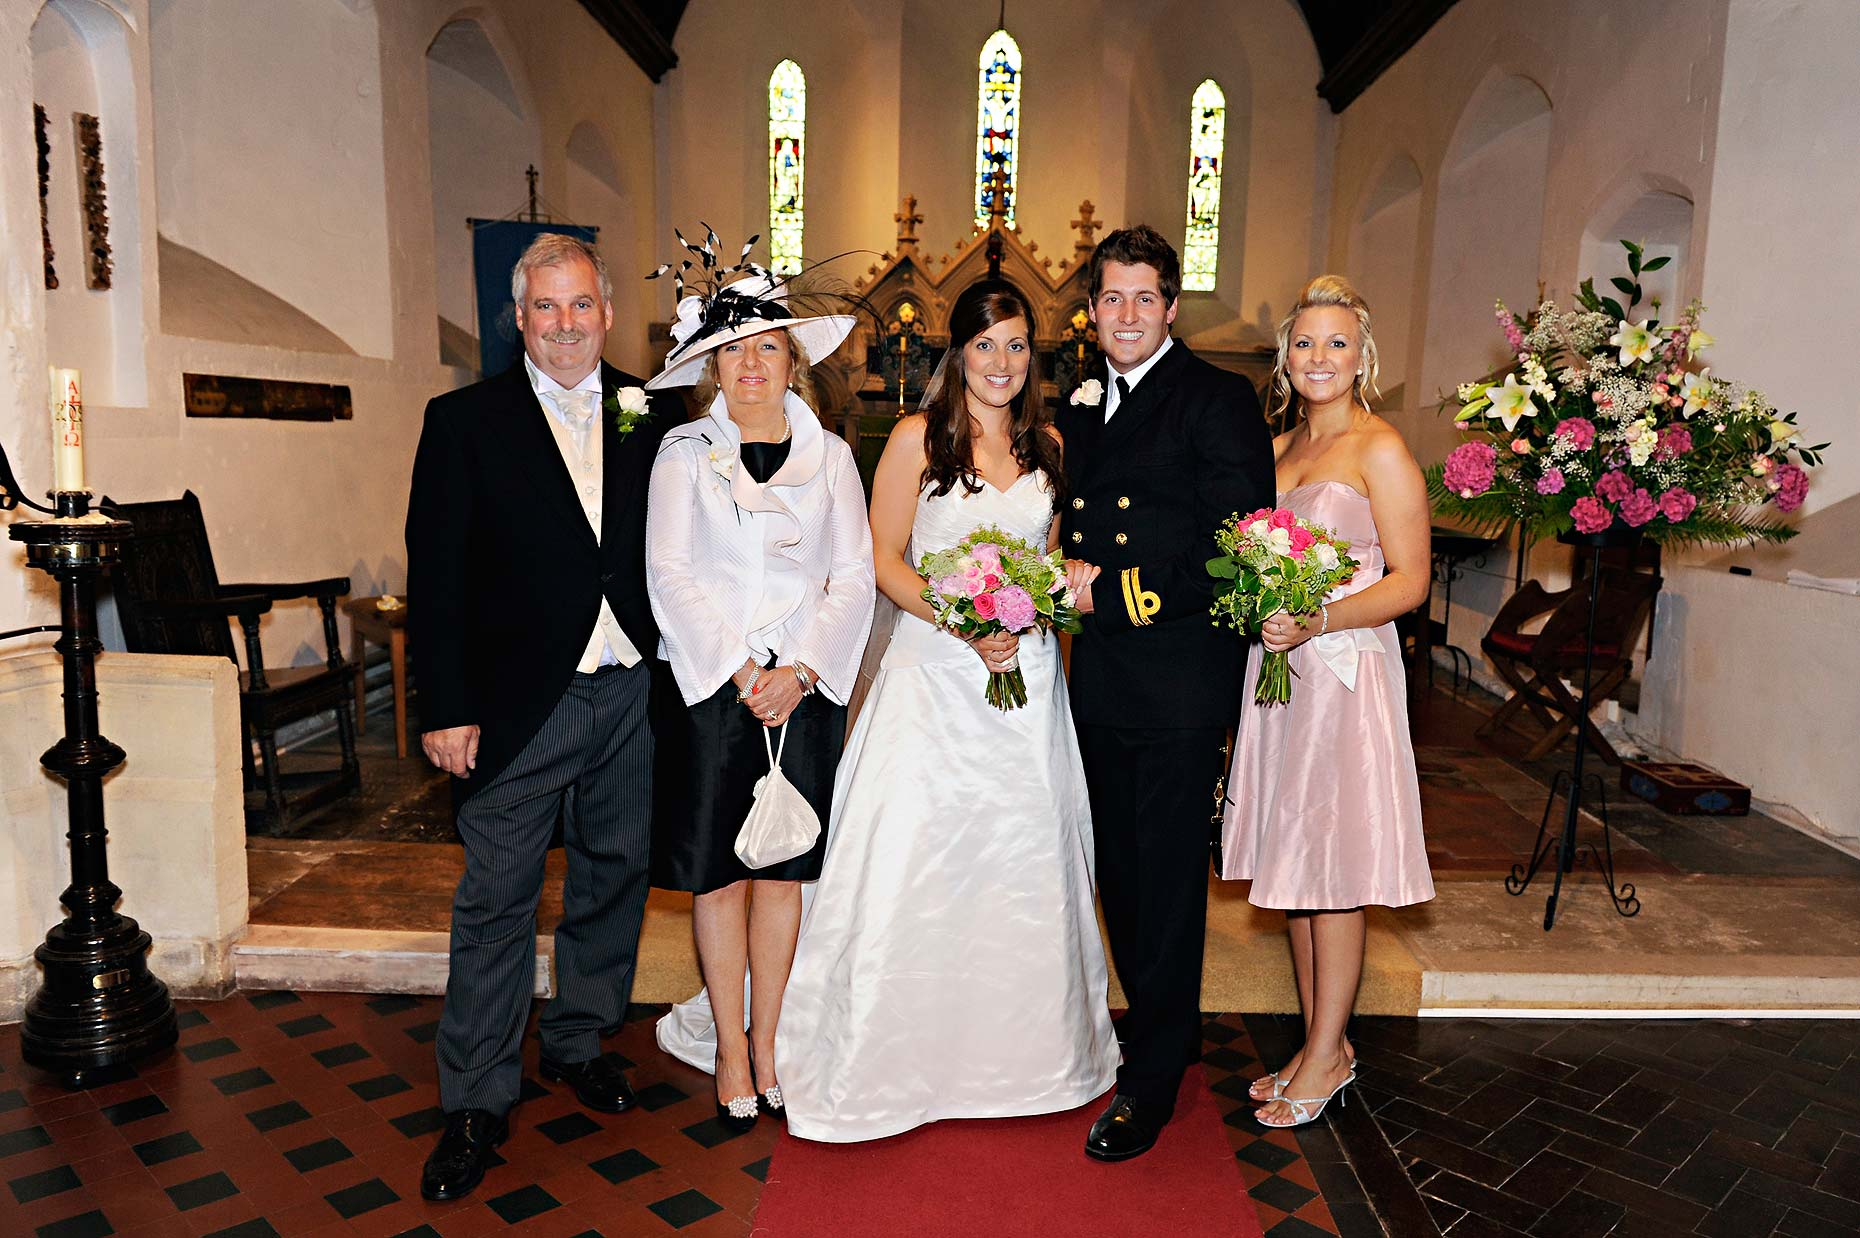 0128-Group-Shot-St-James-Church-Wedding-Ludgershall-Wedding-Wiltshire.jpg